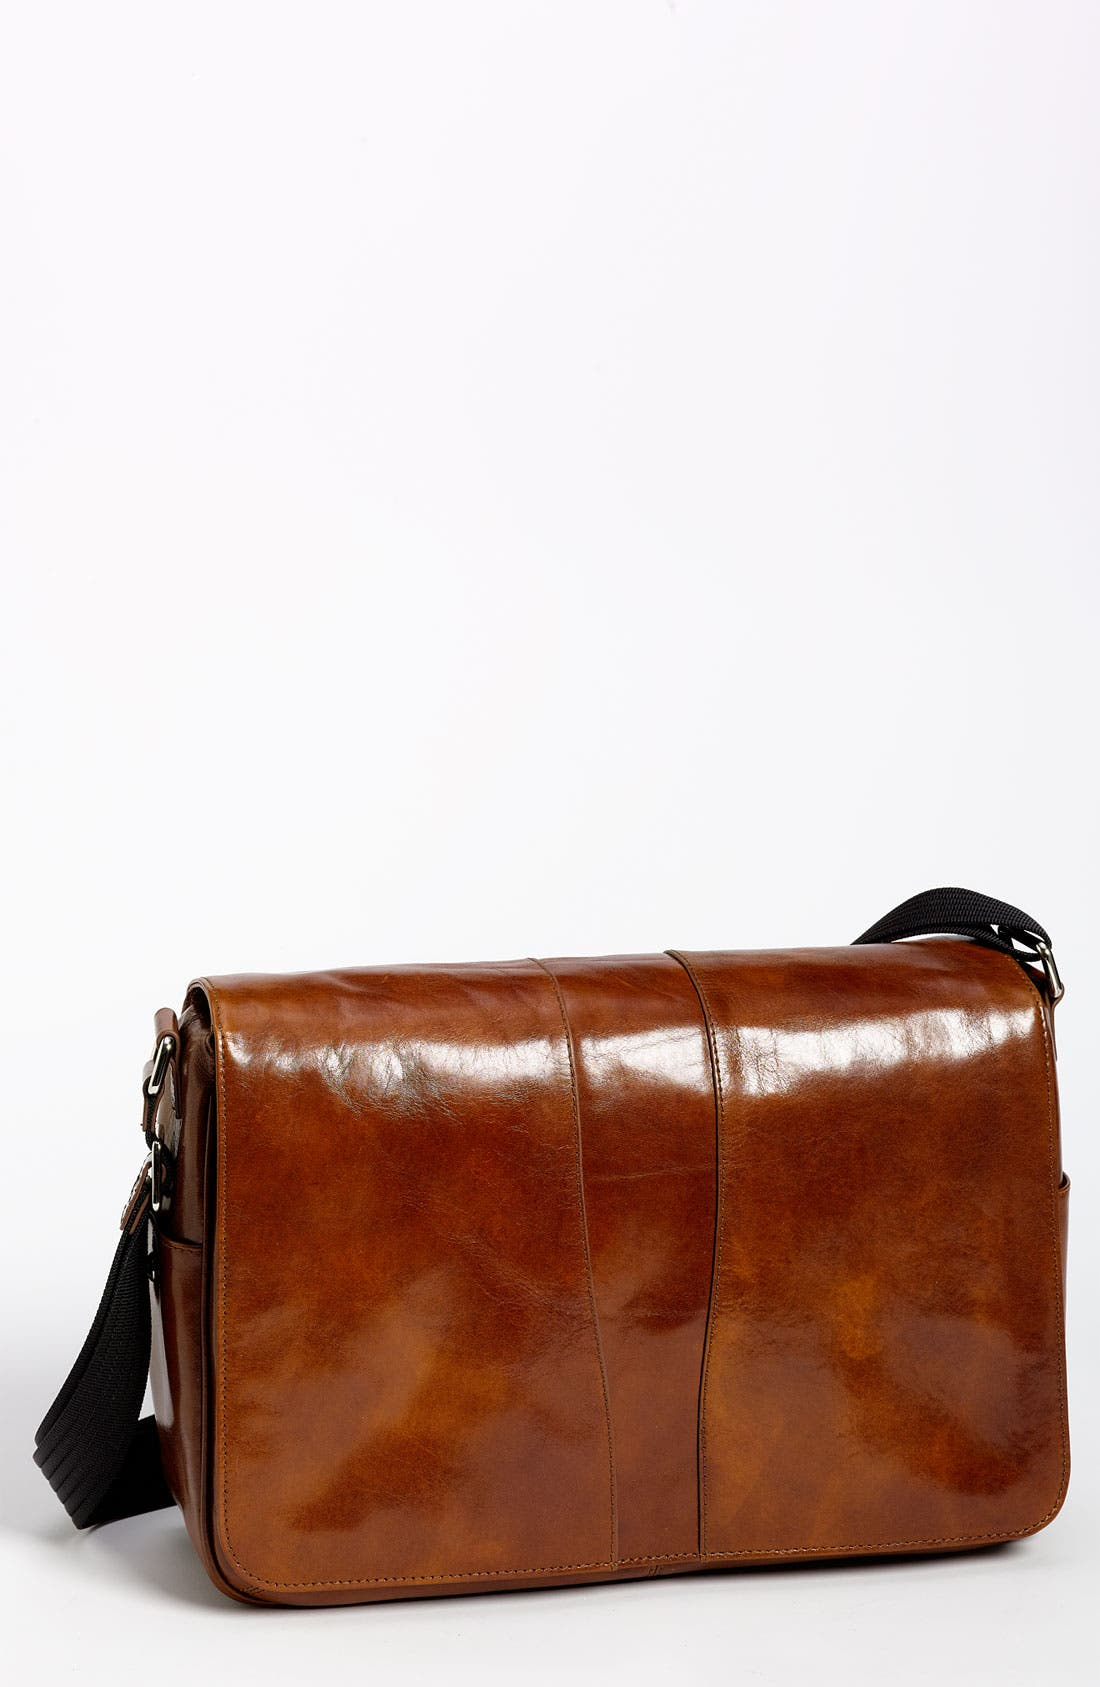 BOSCA Leather Messenger Bag